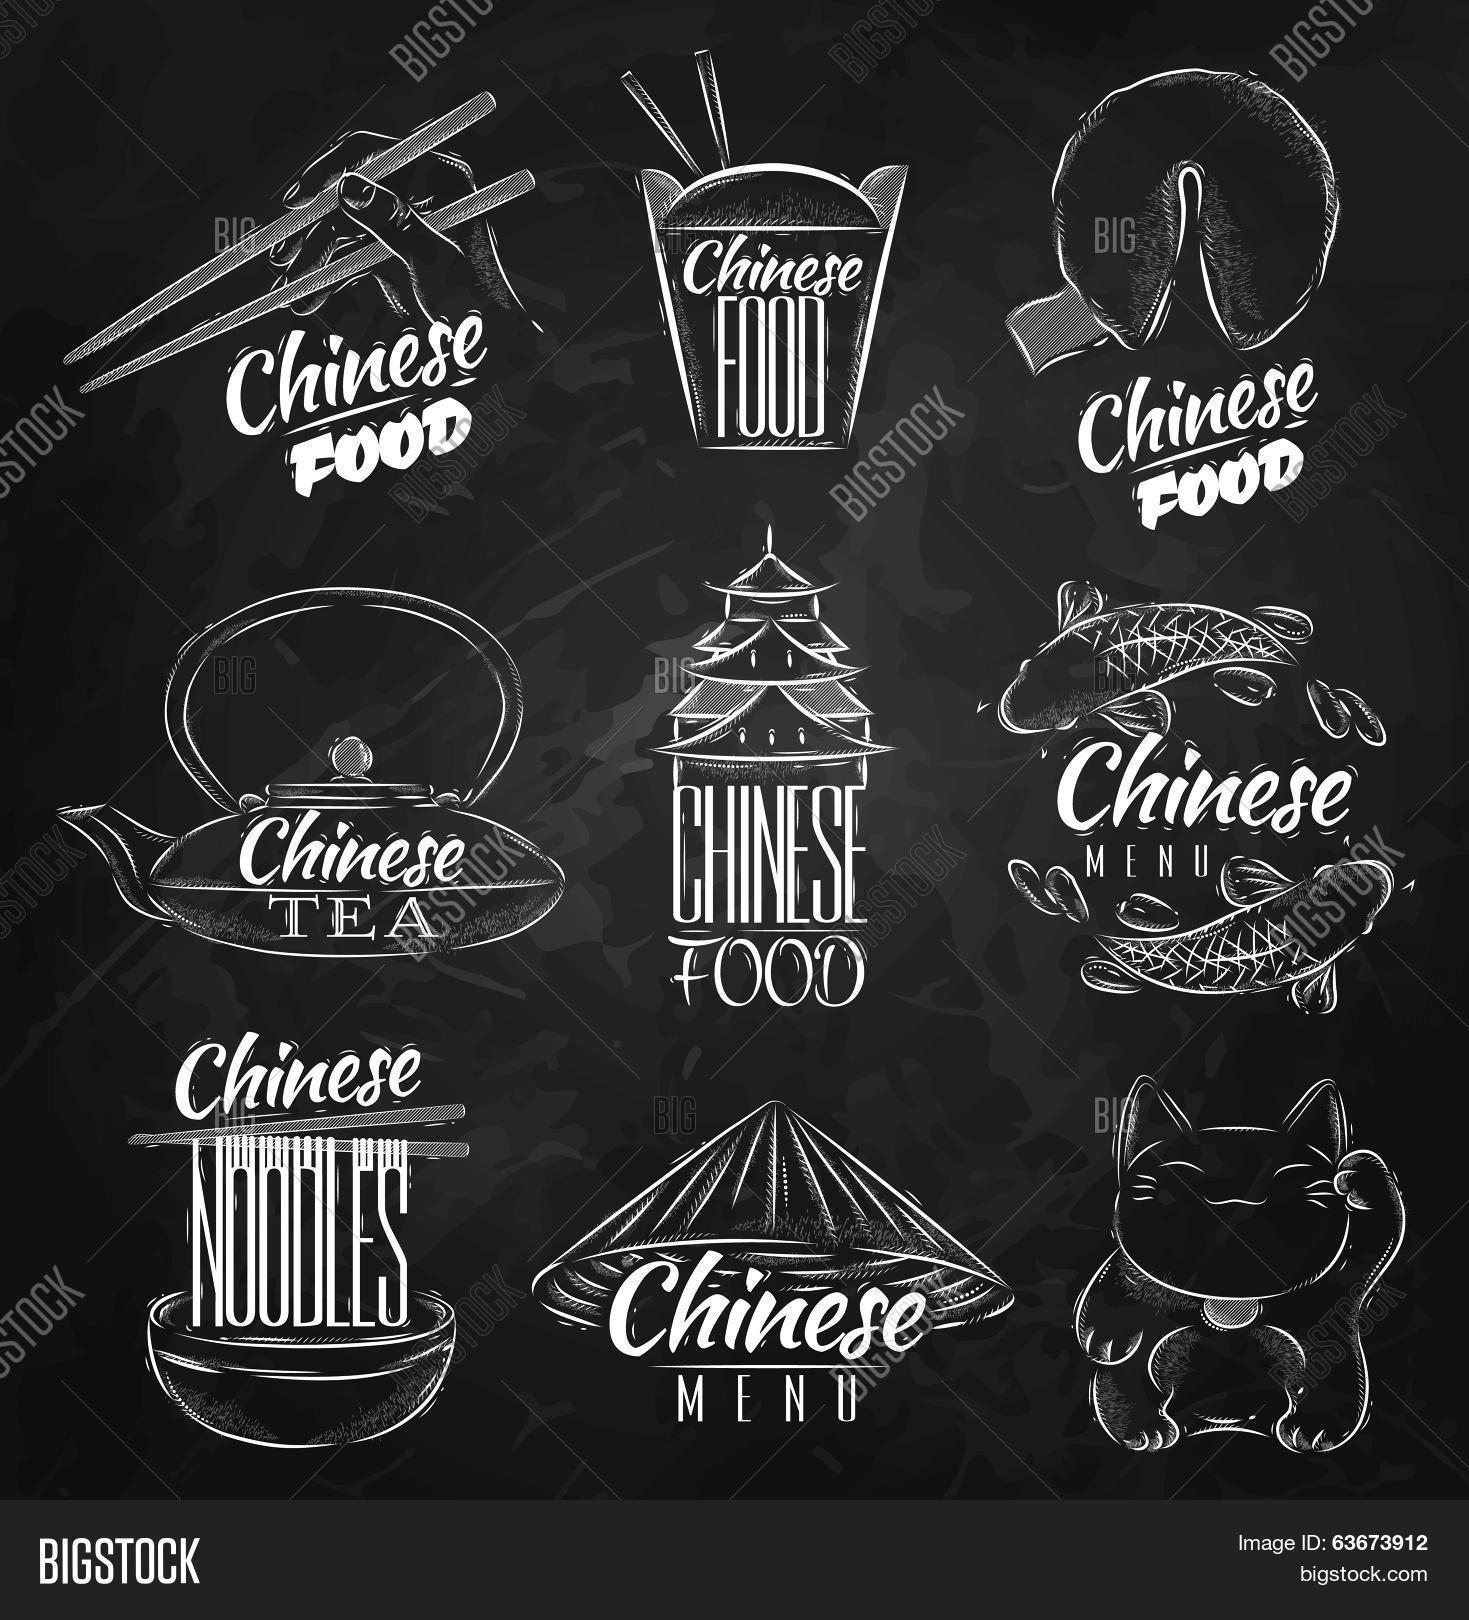 Chinese Food Symbols Vector Photo Free Trial Bigstock